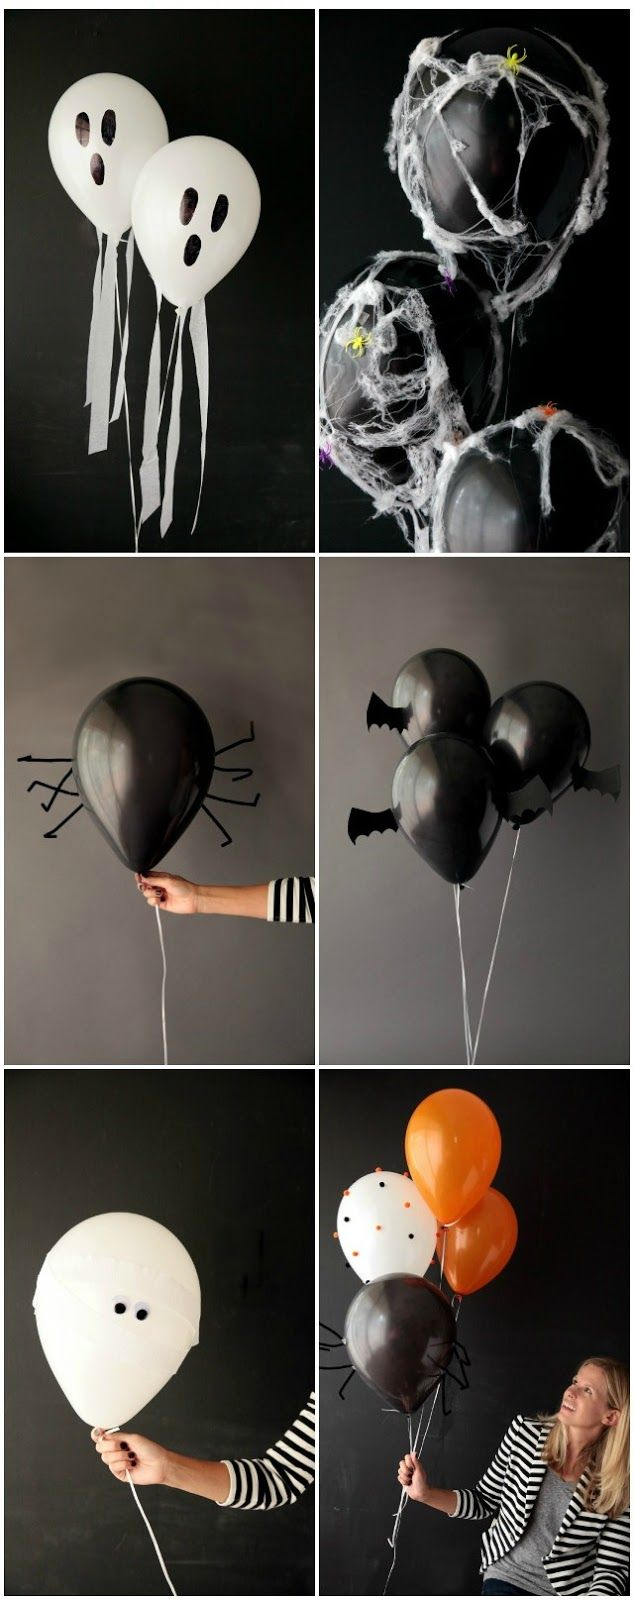 6 Simple DIY Halloween Balloon Ideas! | Design Improvised